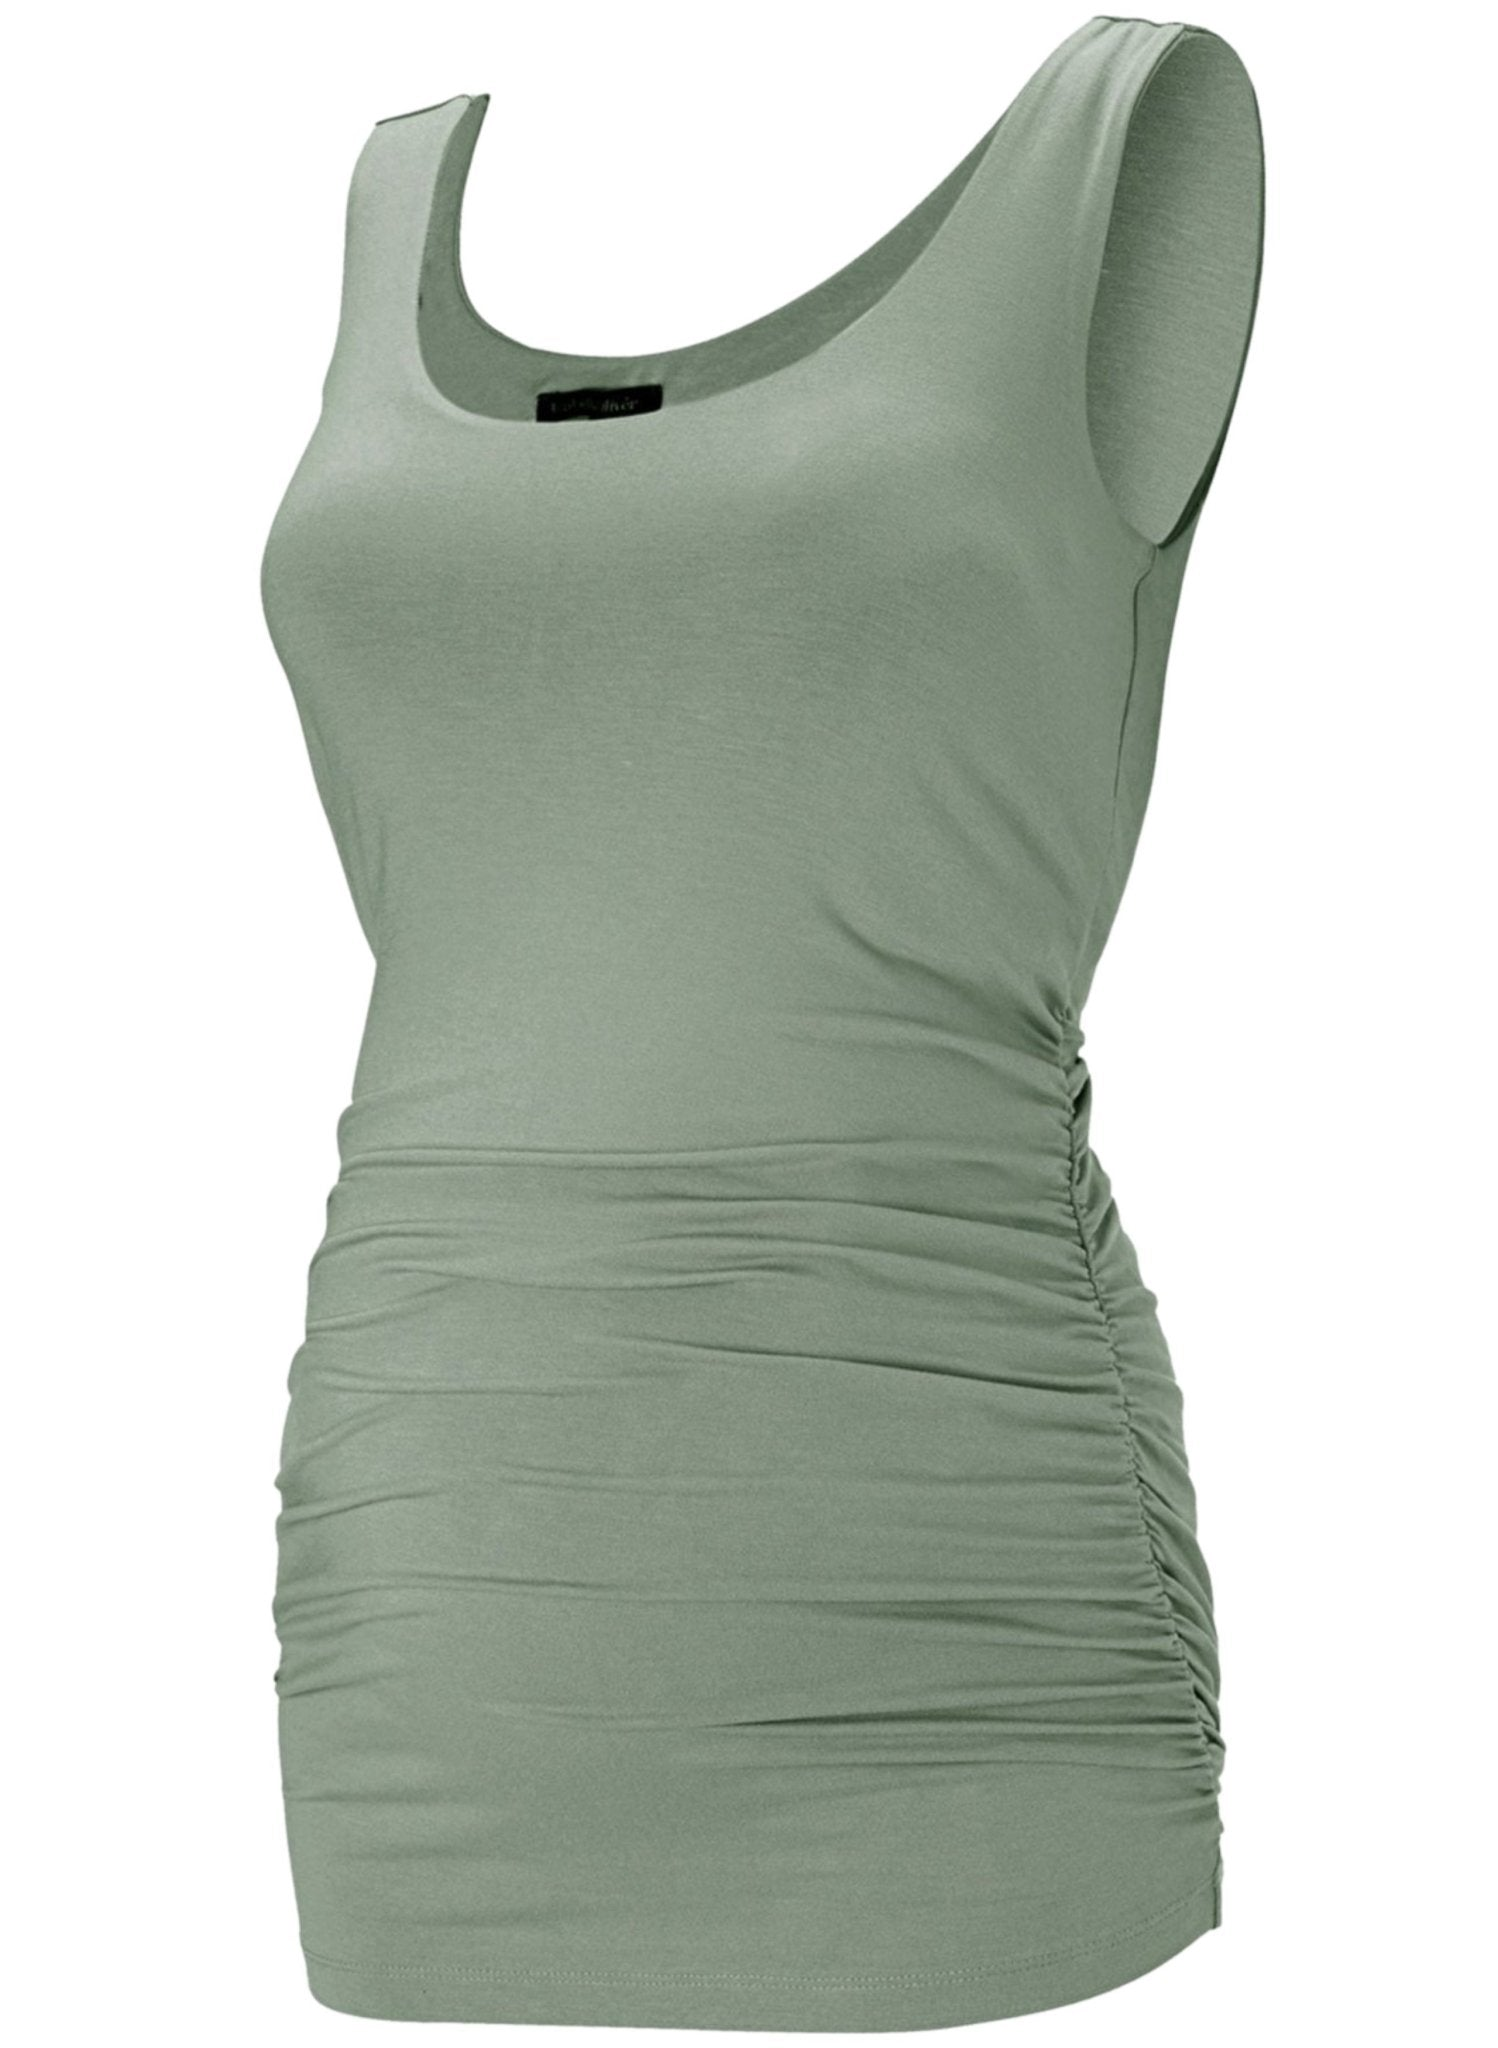 The Maternity Tank - Dusted Khaki - Mums and Bumps